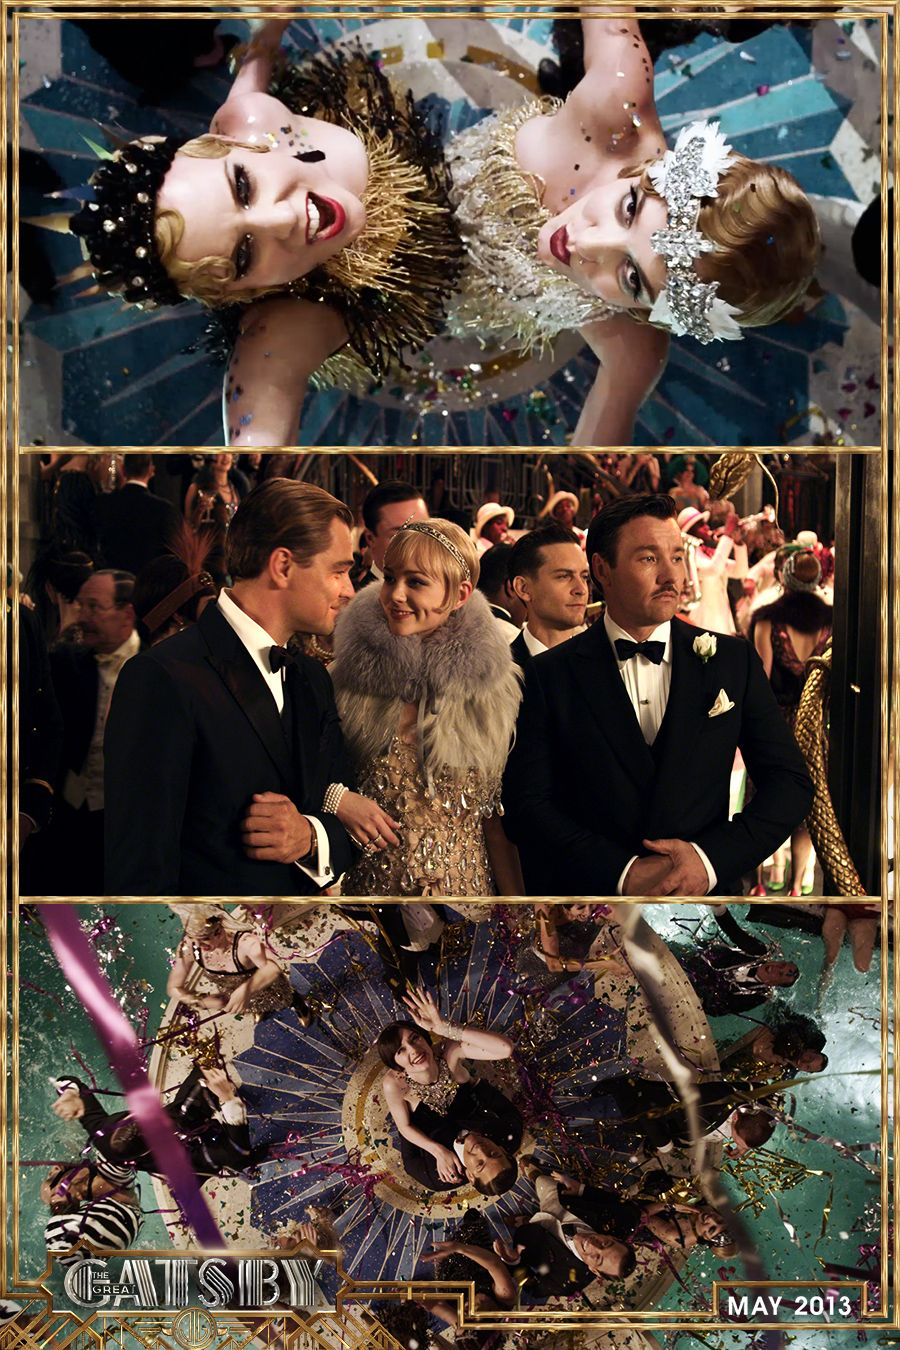 A little party never killed nobody. TheGreatGatsby